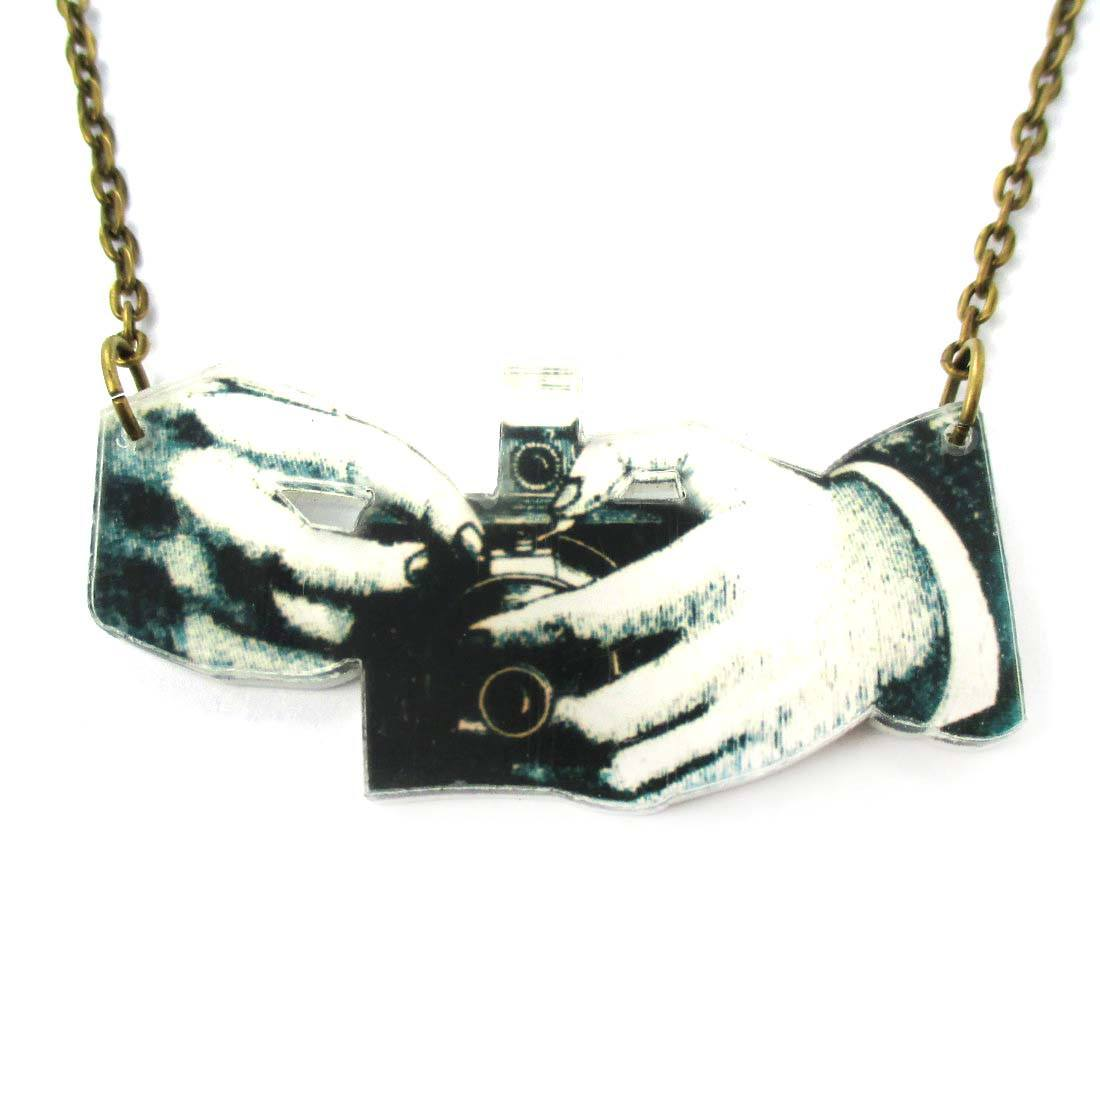 Hands Holding a Vintage Camera Shaped Acrylic Pendant Necklace